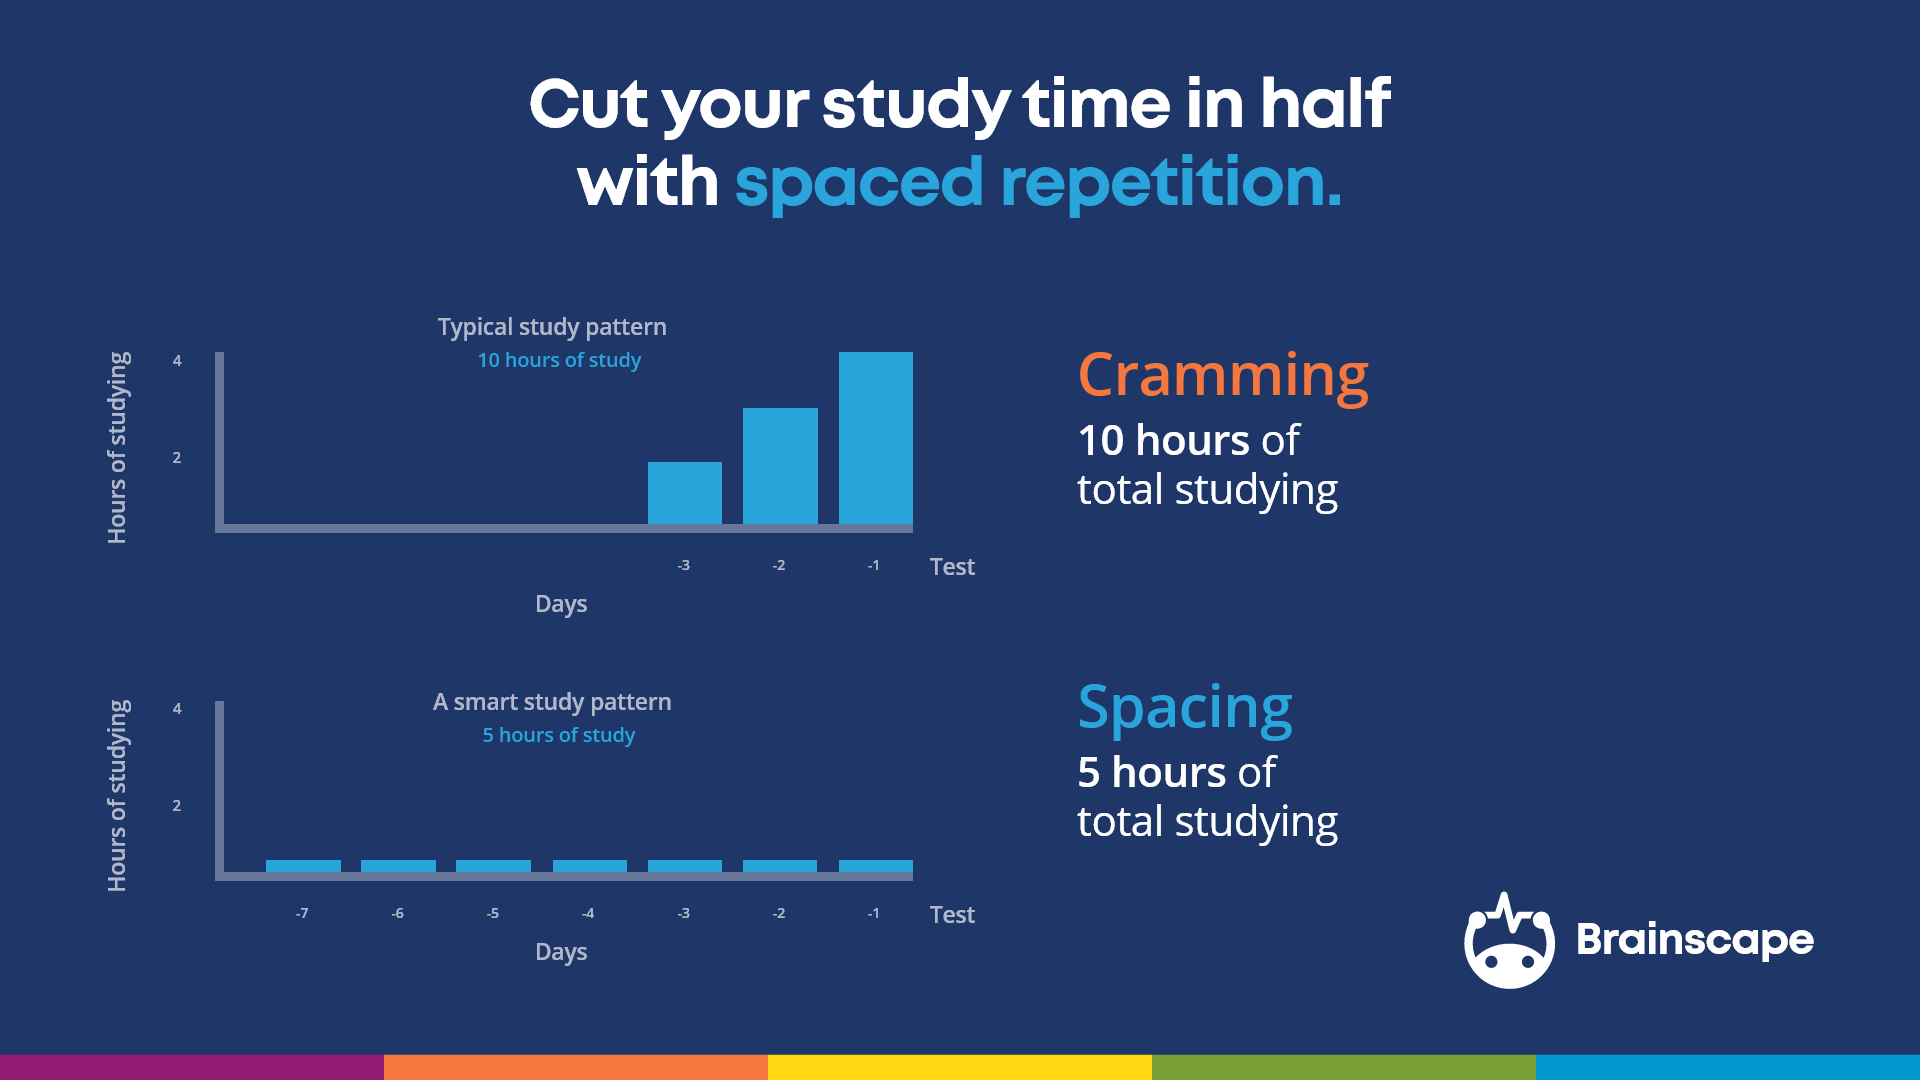 Graph showing spaced repetition cuts study time in half